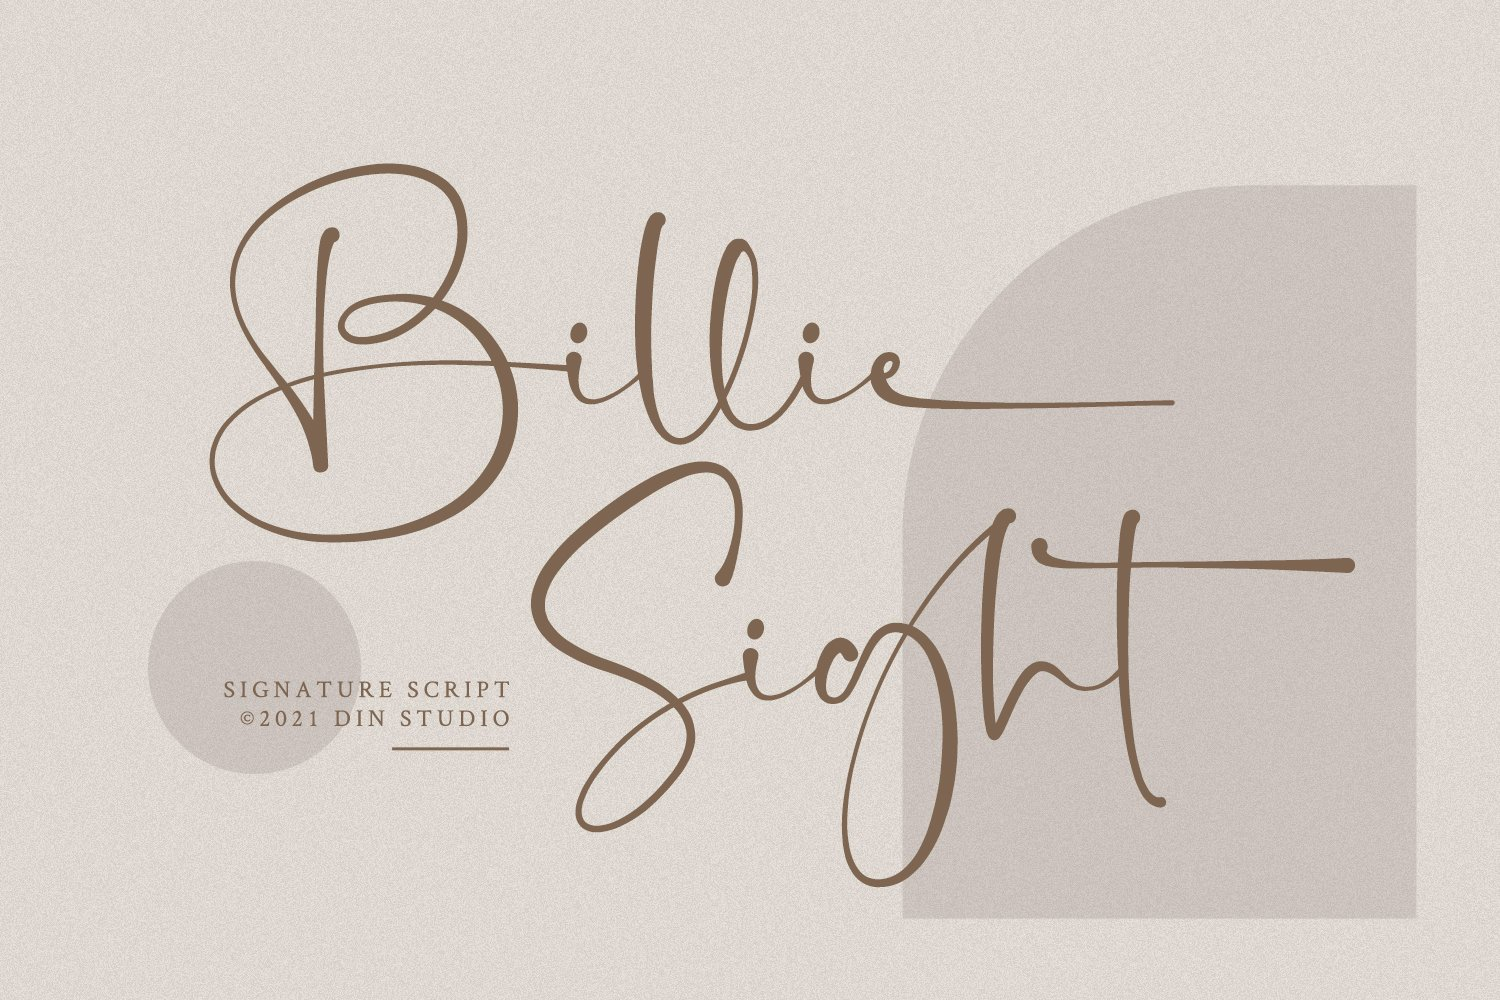 Billie Sight Signature Calligraphy Font -1